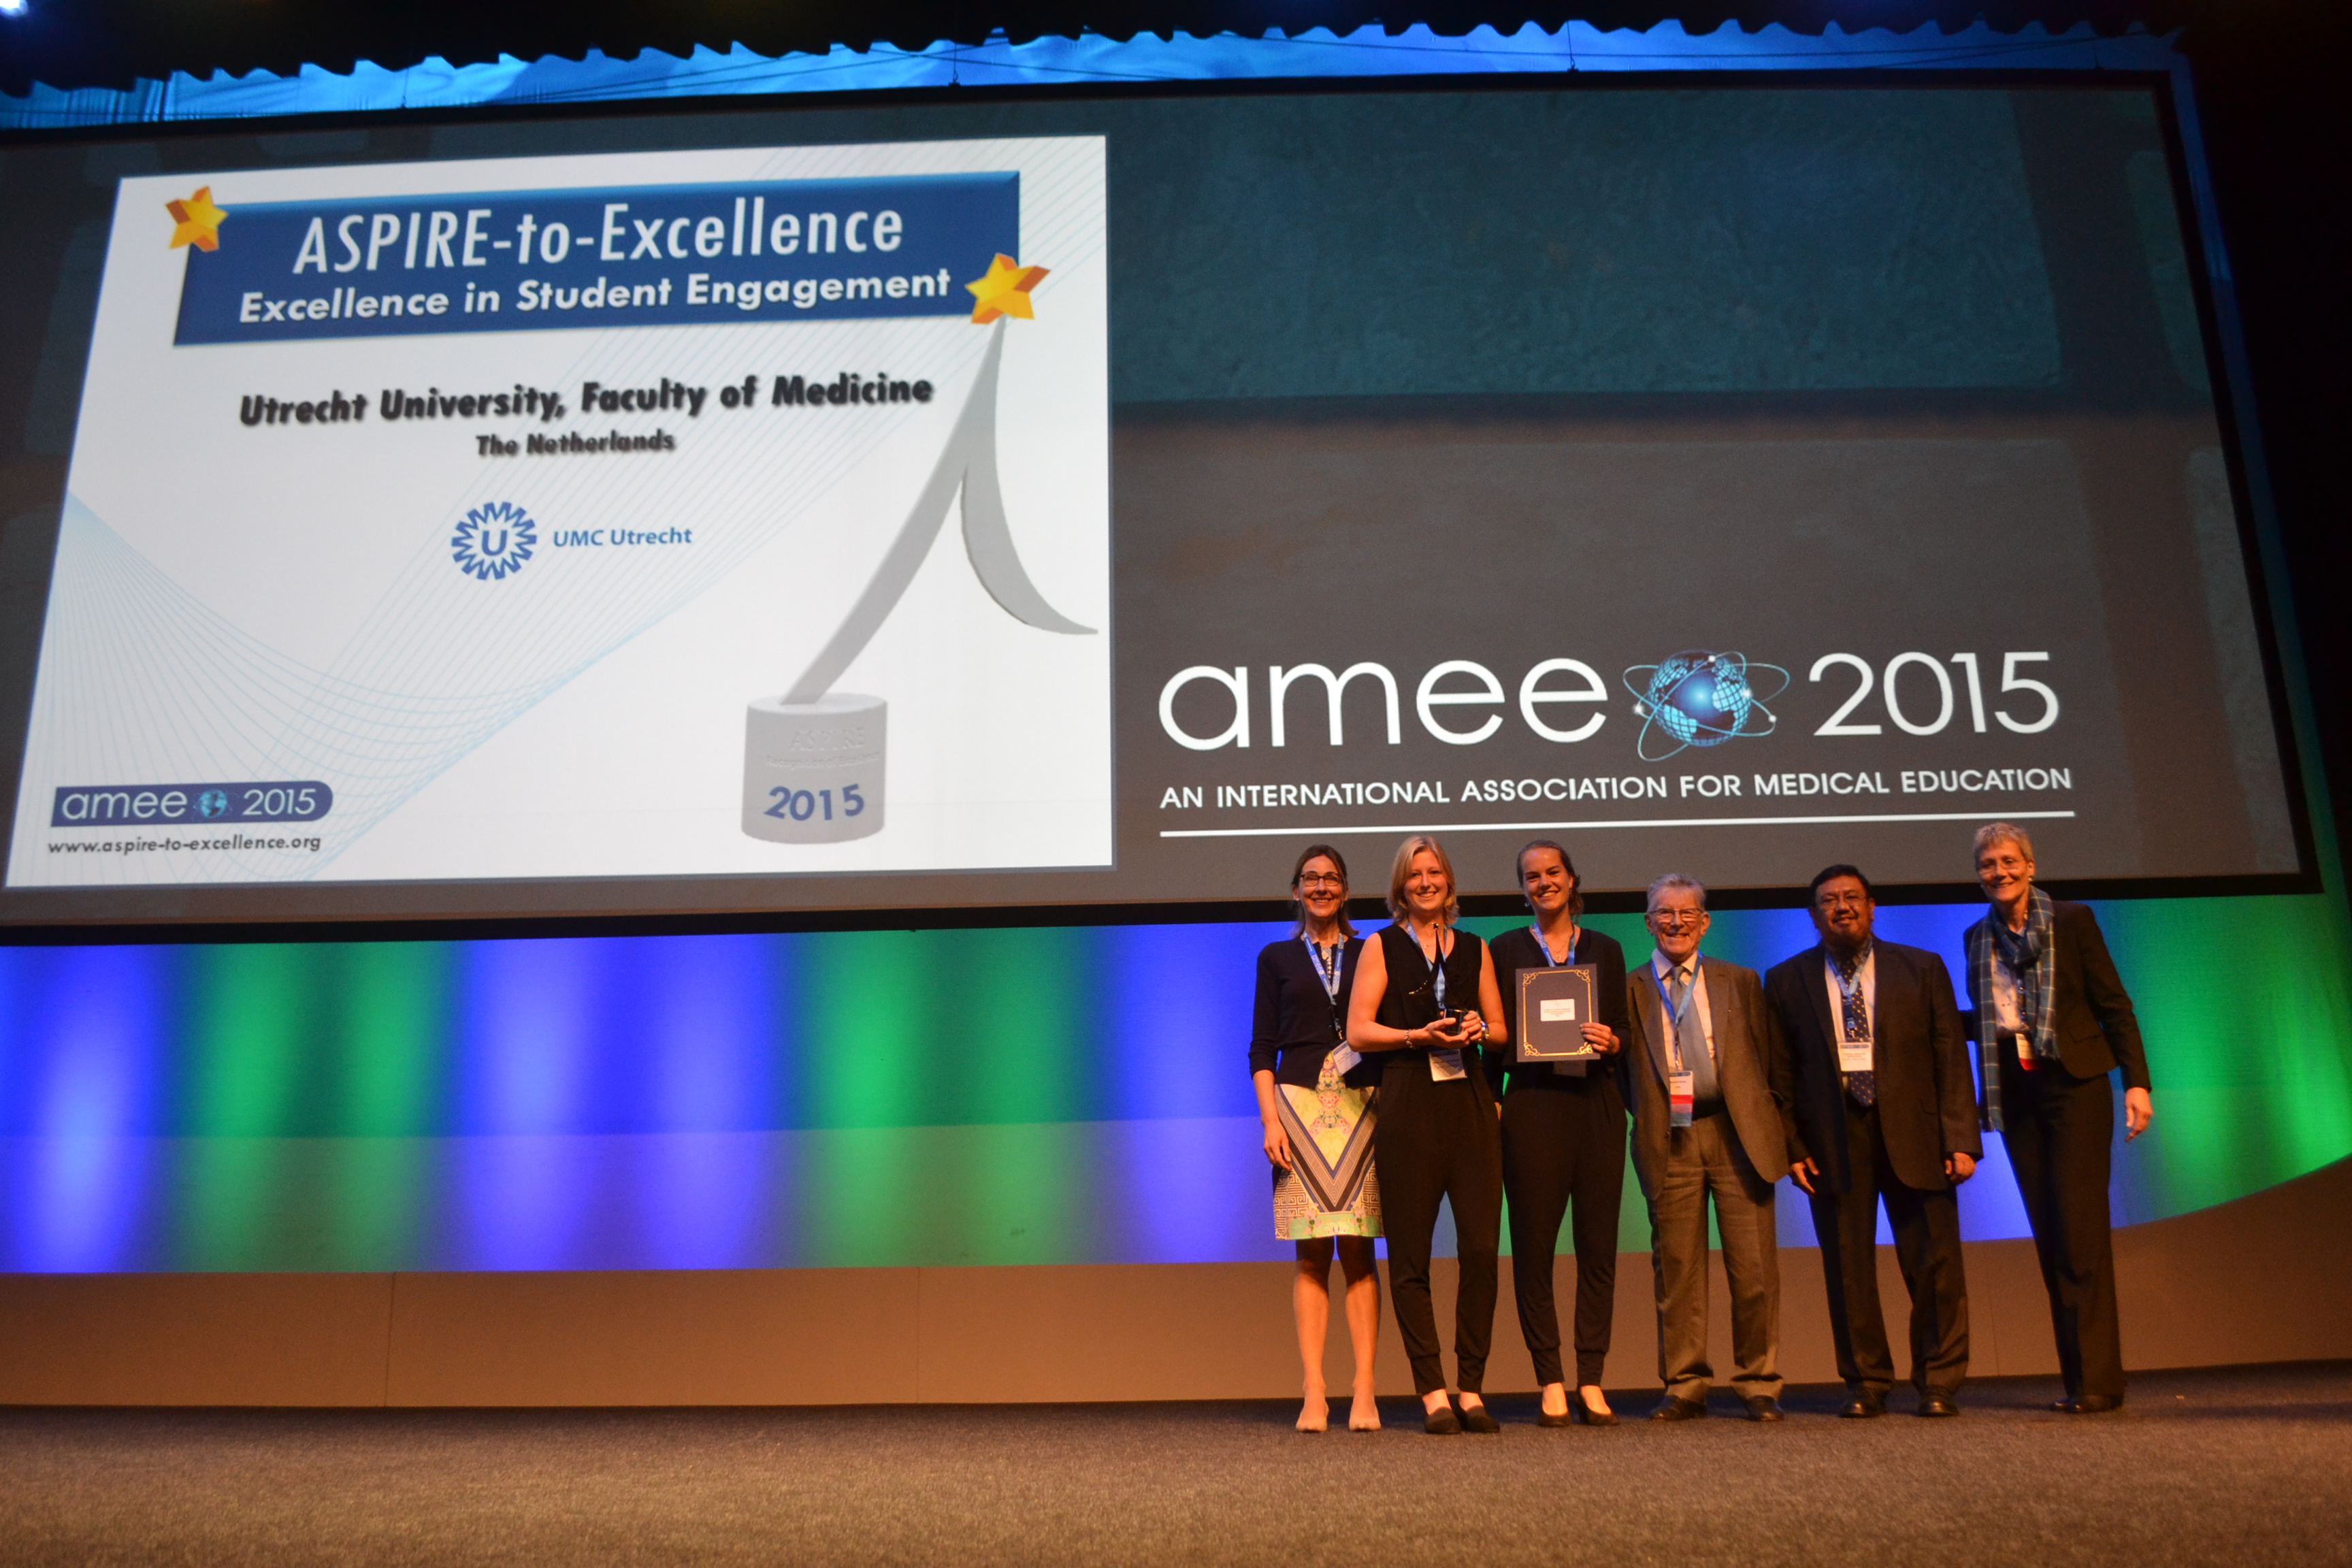 AMEE 2015 - ASPIRE-to-Excellence Student Awards - 024_Utrecht.JPG